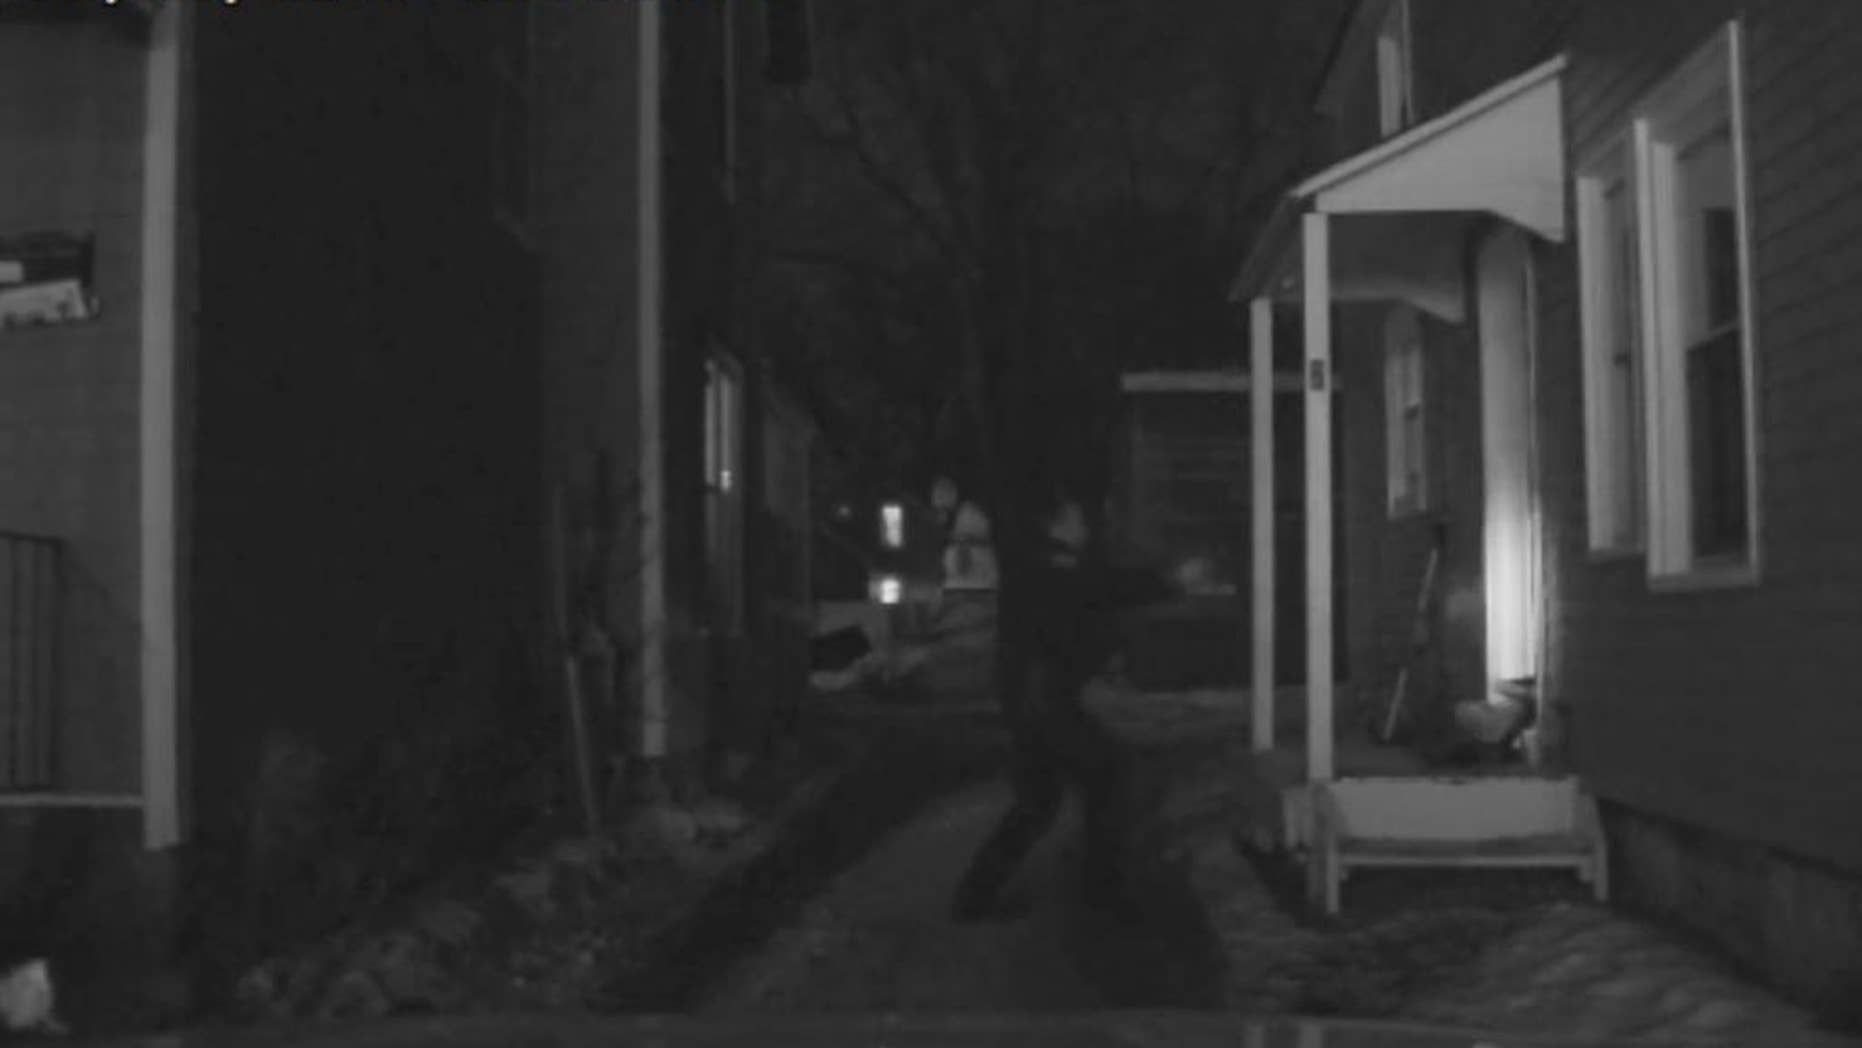 In this March 6, 2015 frame from Madison Police dash camera video released by Wisconsin State Justice Department, Officer Matt Kenny backs away from the door after shooting inside an apartment in Madison, Wis. The officer won't be charged for fatally shooting an unarmed 19-year-old biracial man, Tony Robinson, a prosecutor announced Tuesday, May 12, 2015. (Madison Police Department via AP)